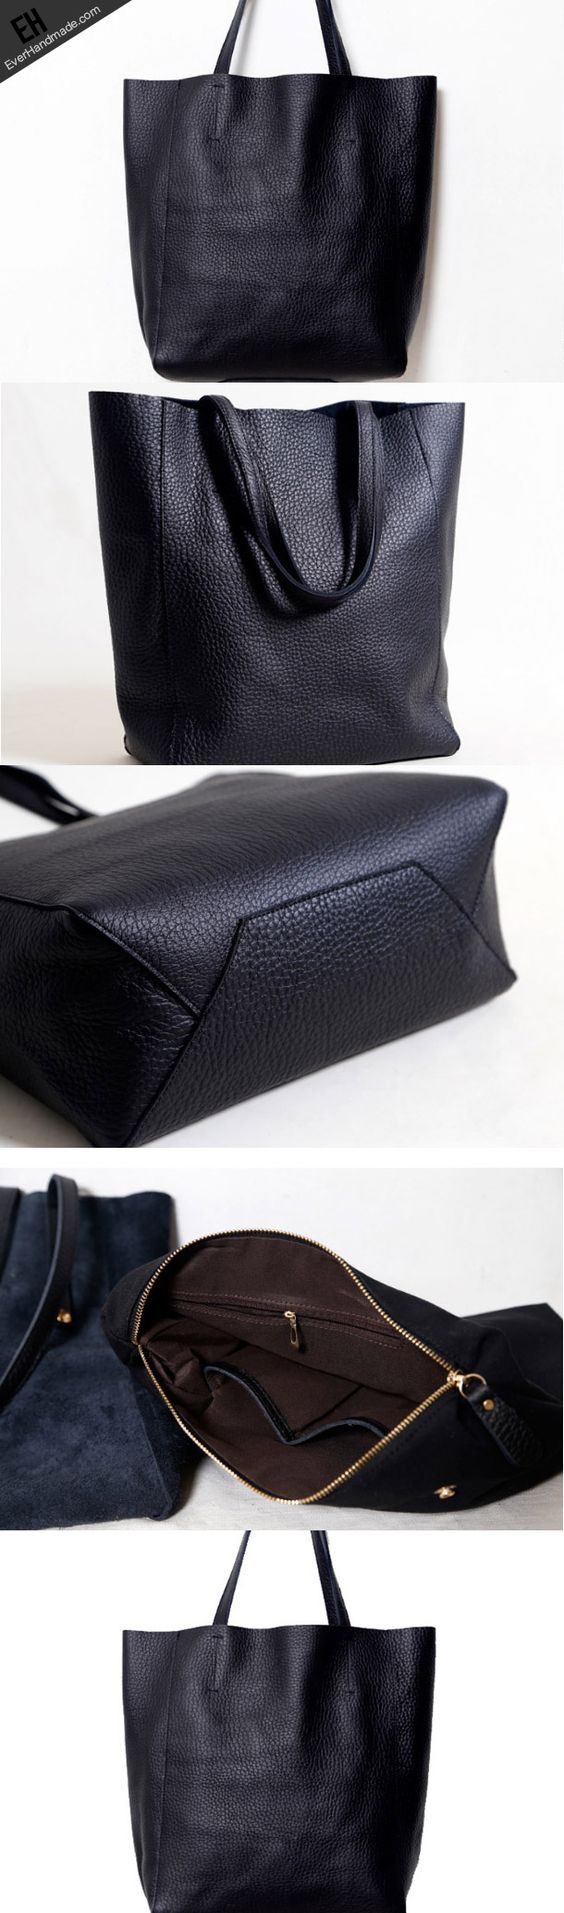 Handmade Leather black tote bag for women leather shoulder bag